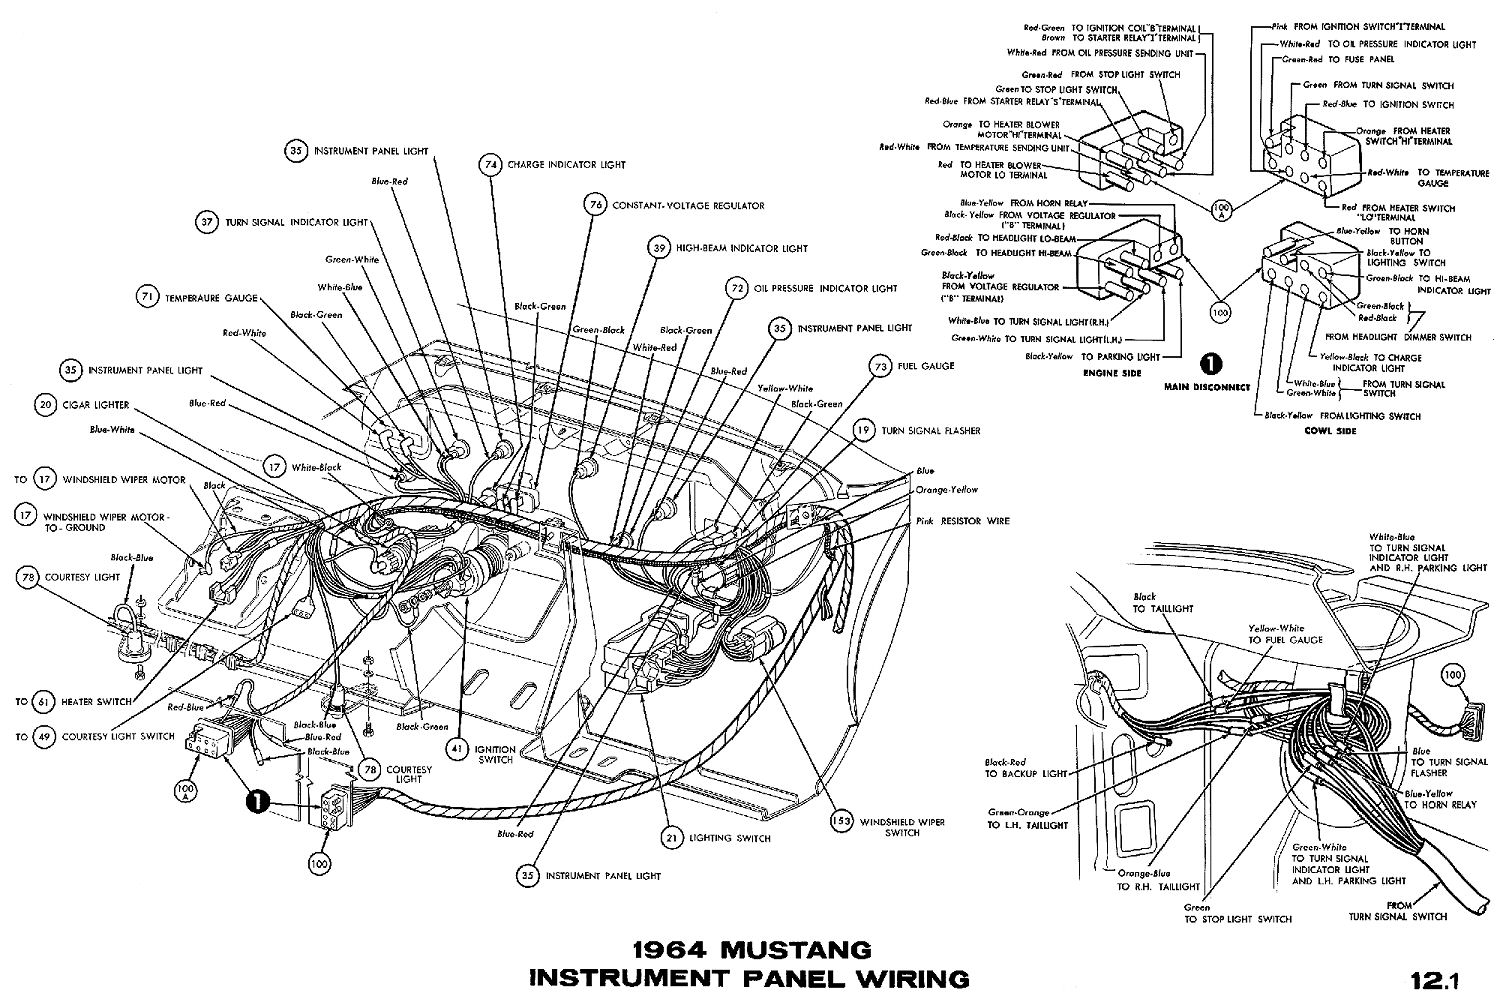 1966 Ford F100 Dash Wiring Diagram on 1970 dodge charger dash wiring